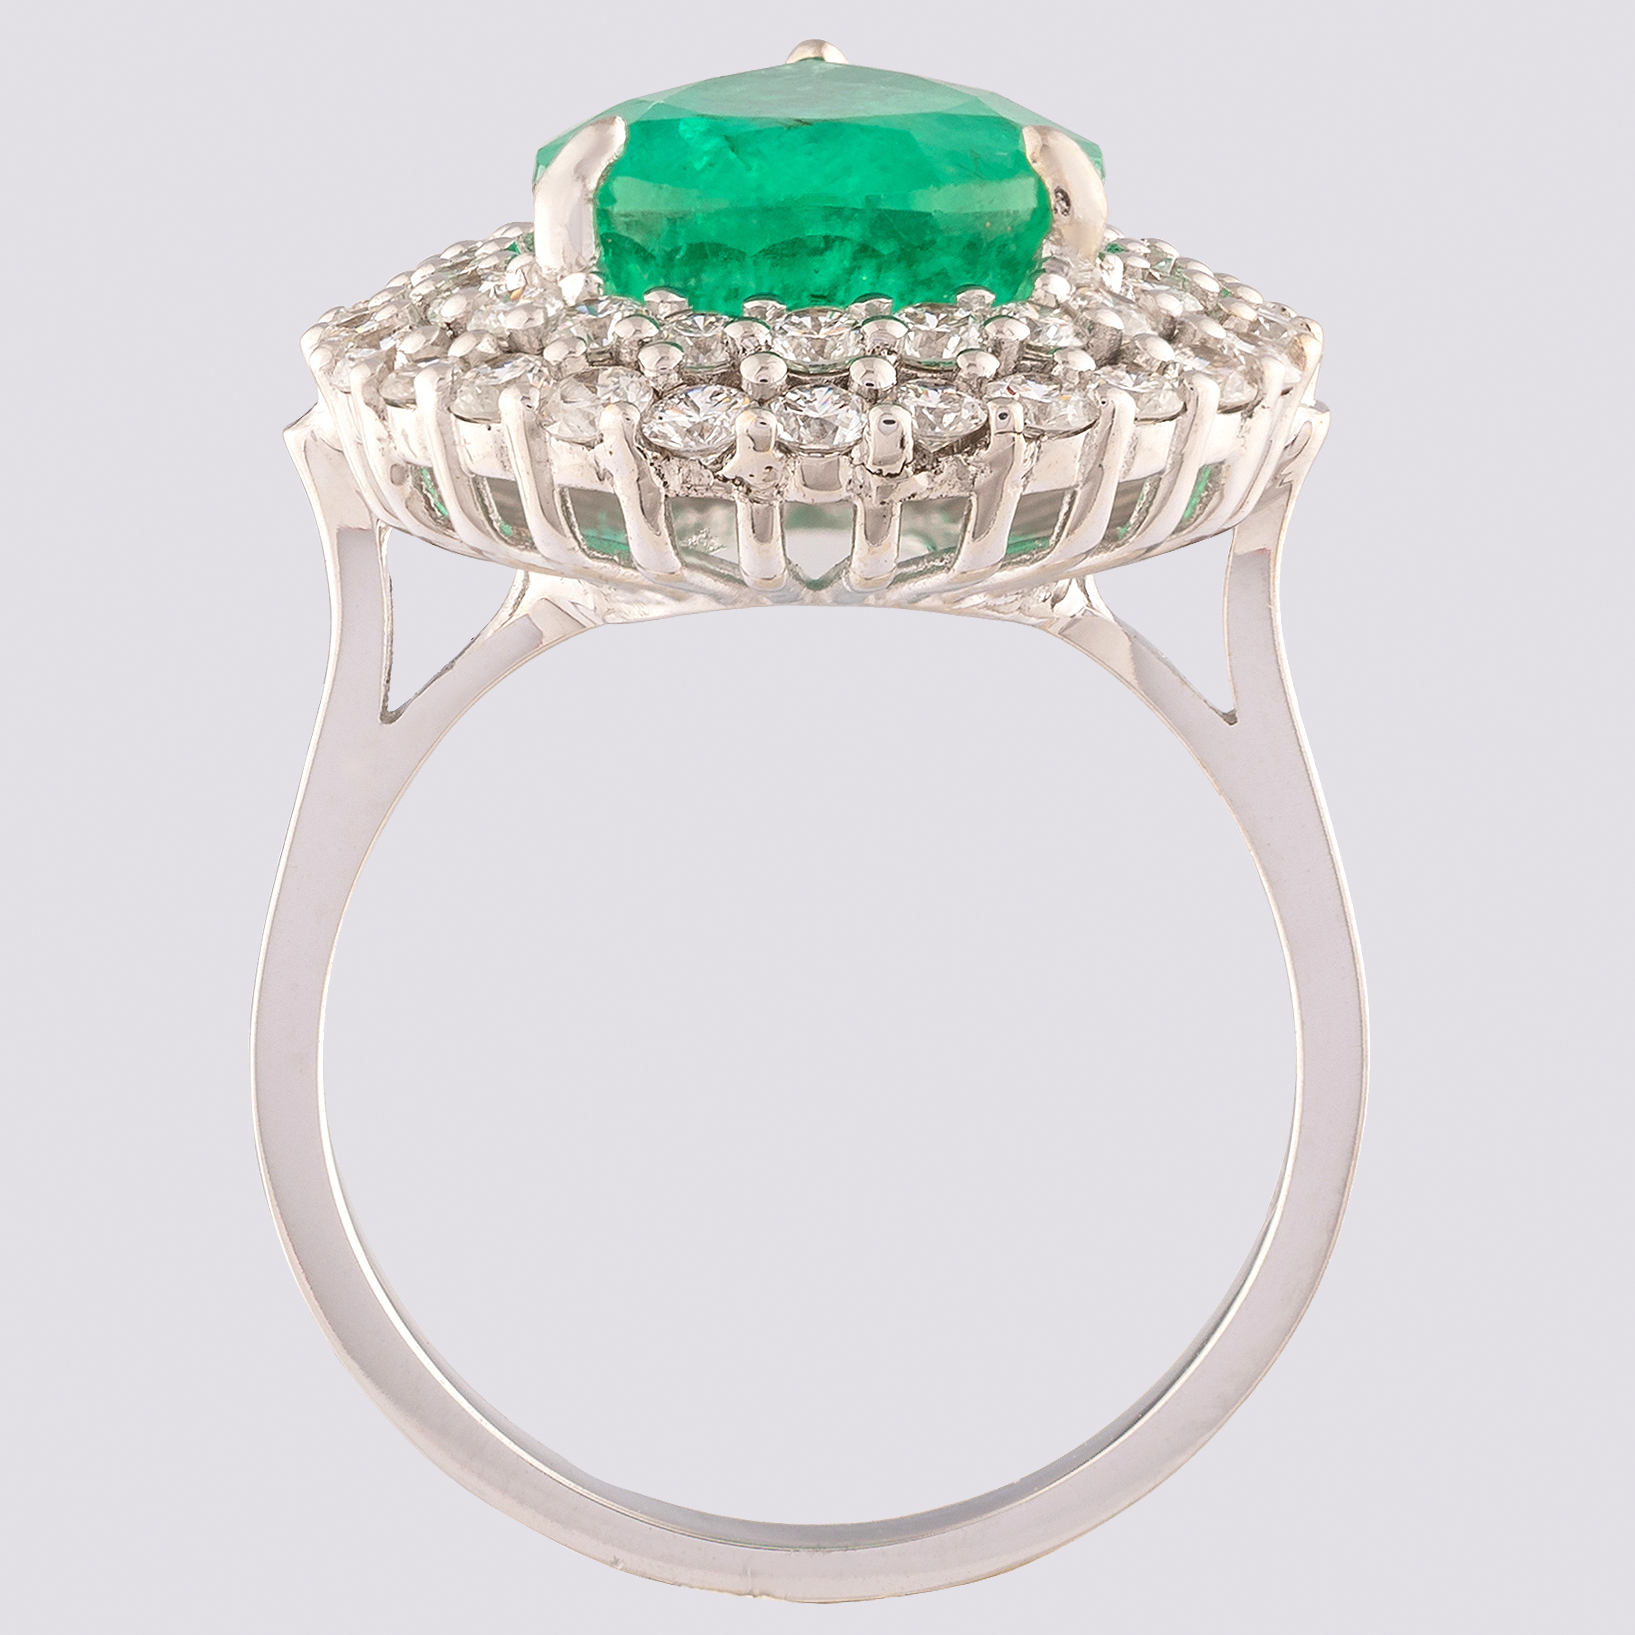 14K White Gold Cluster Ring 4,70 Ct. Natural Emerald - 1,40 Ct. Diamond - Image 4 of 4